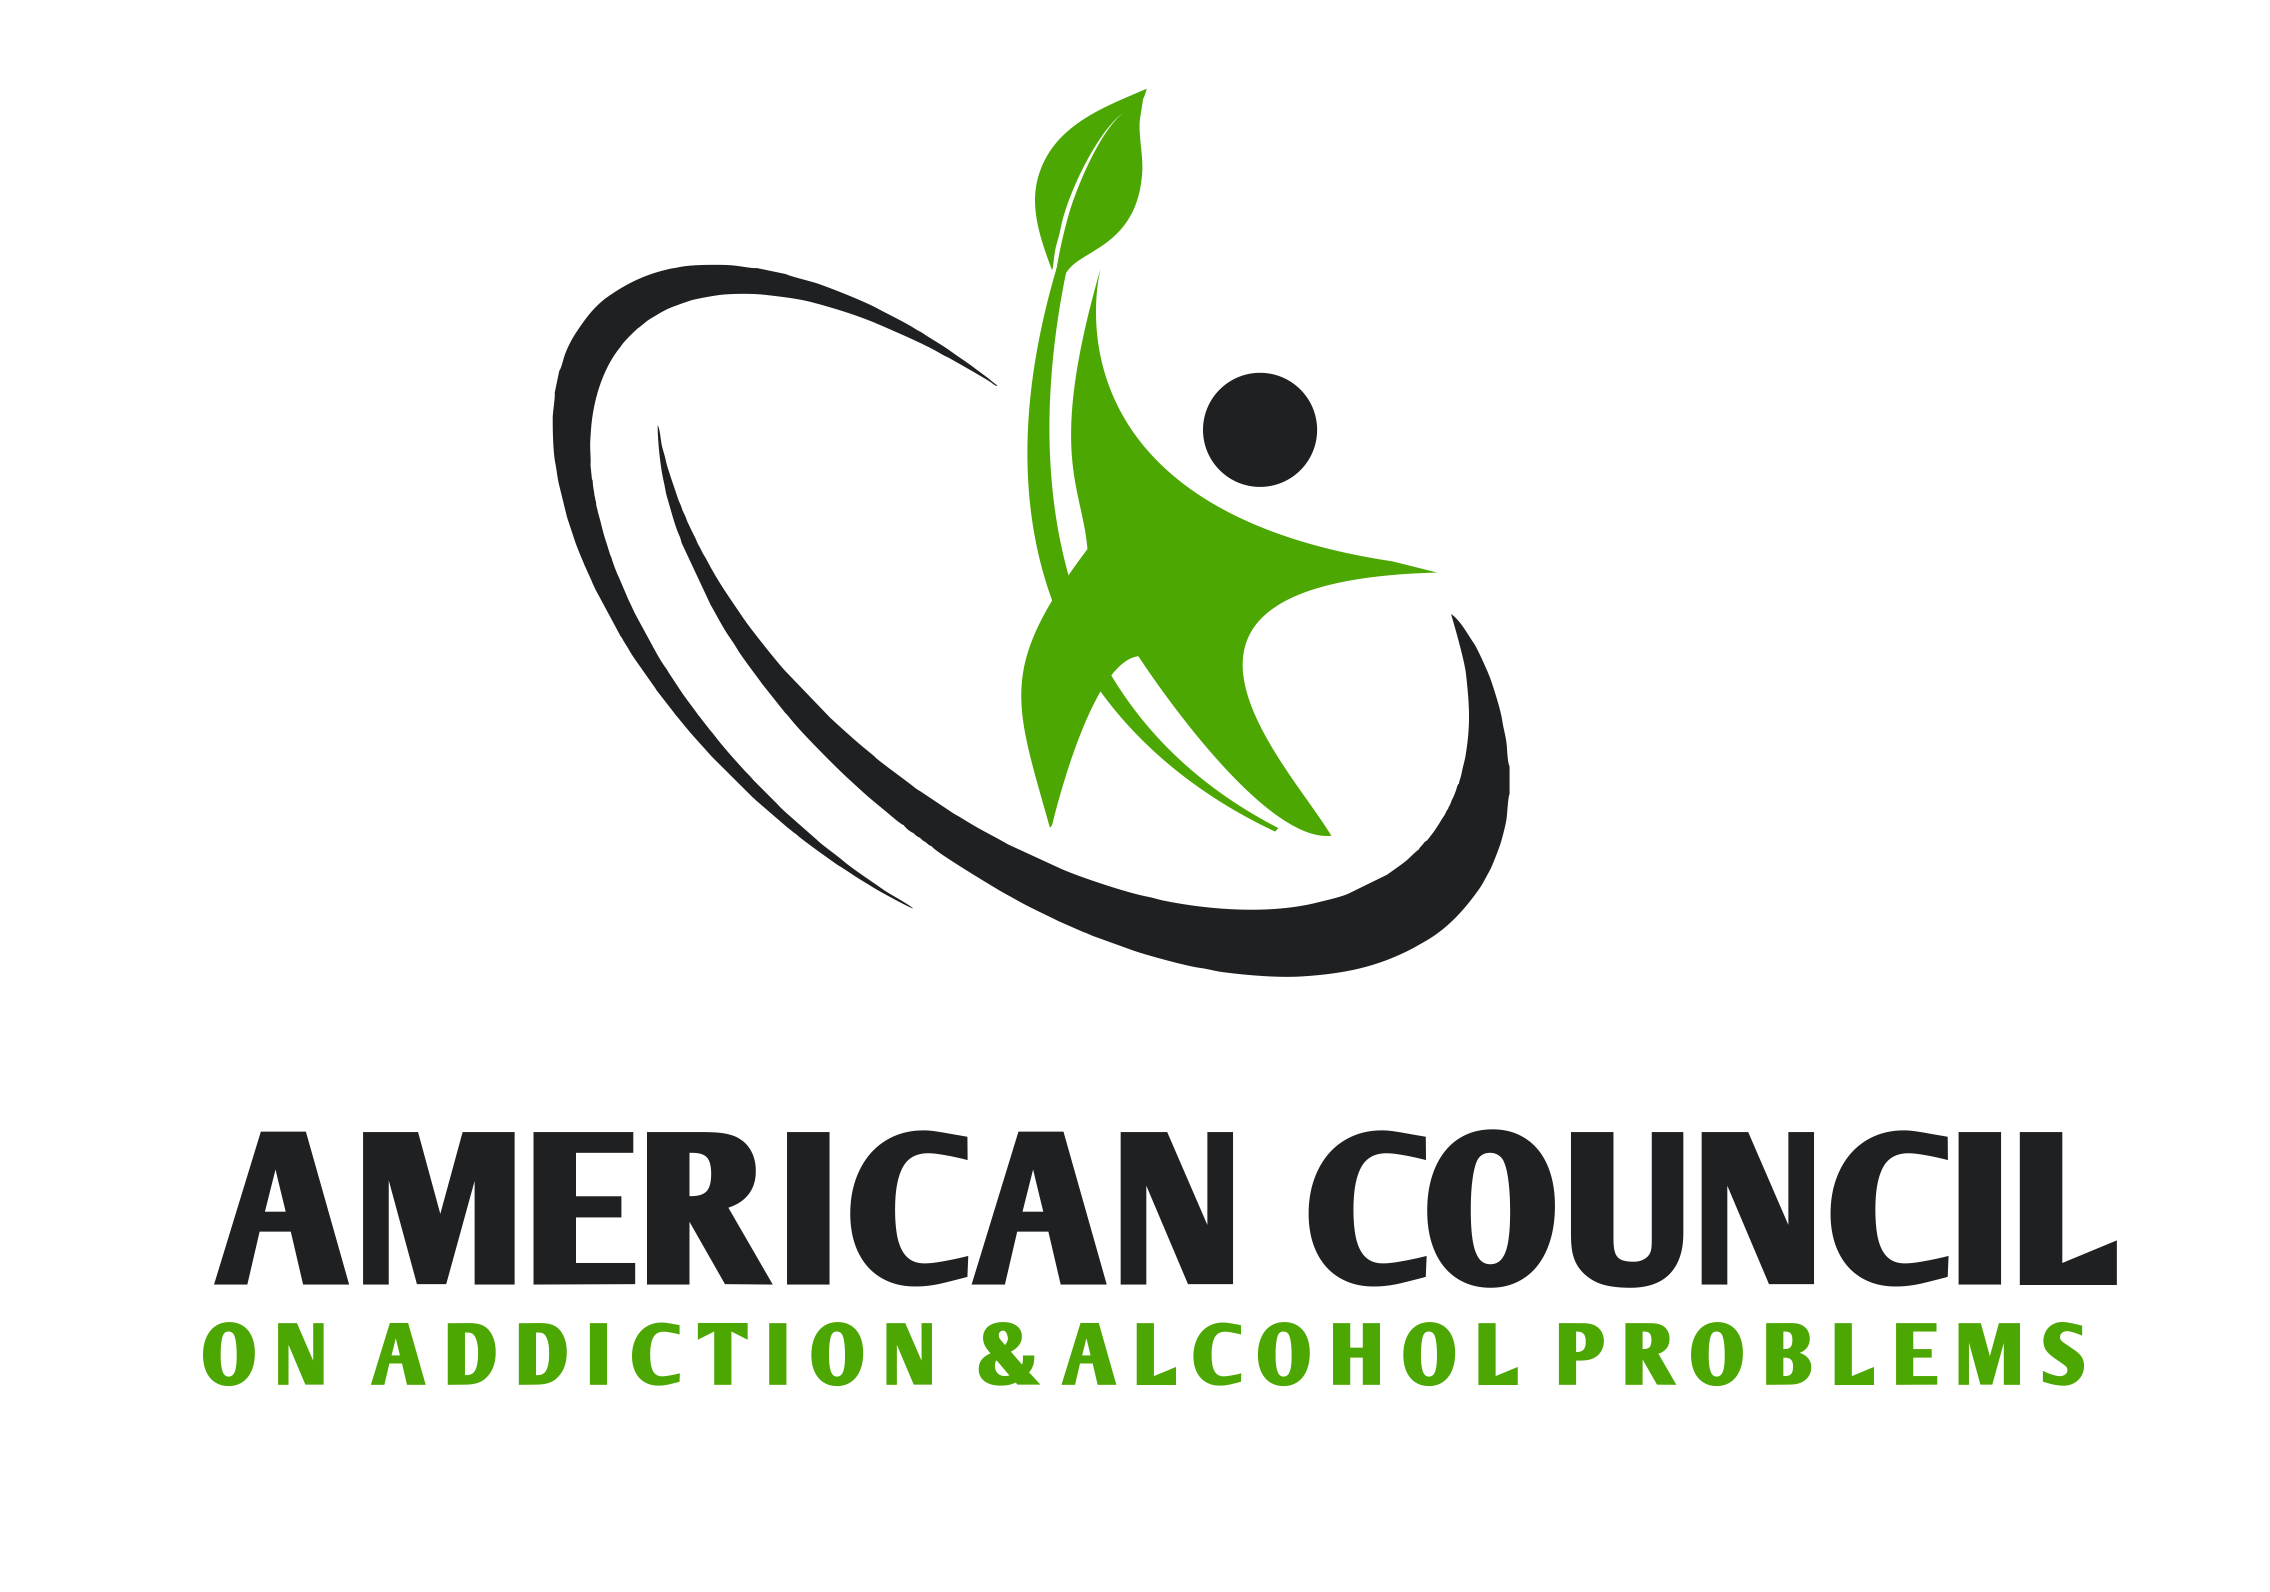 American Council on Addiction and Alcohol Problems